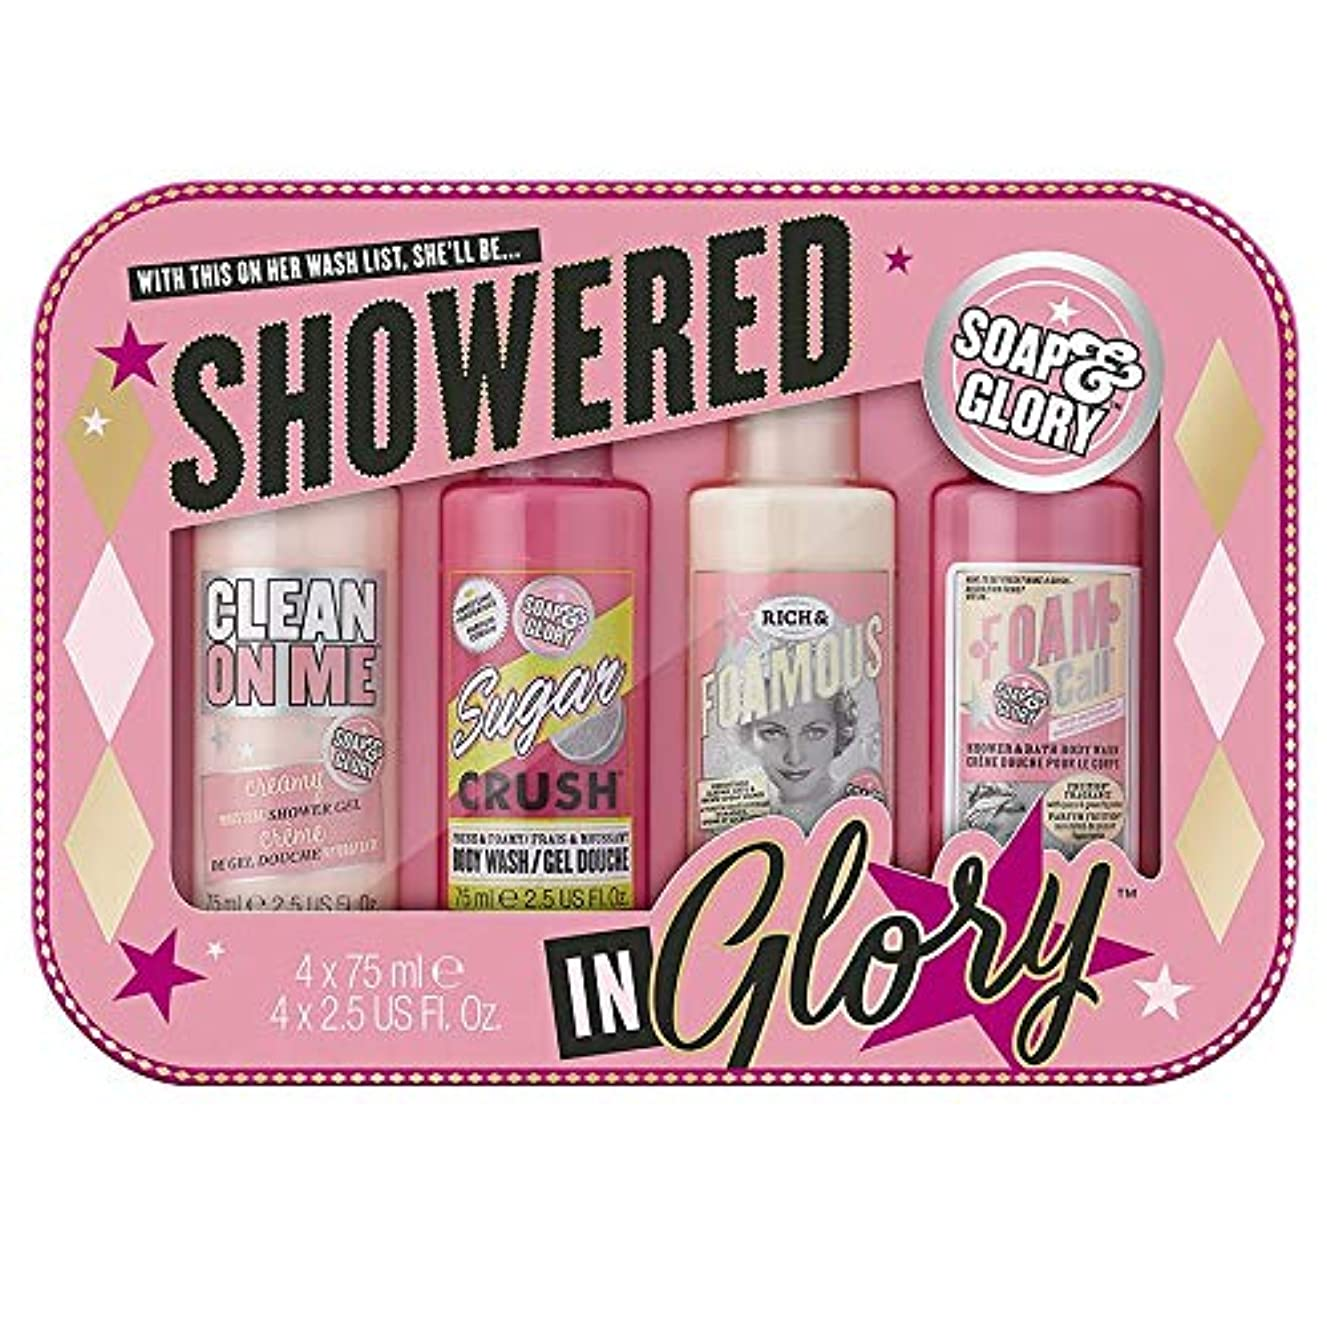 Soap & Glory Showered in Glory Shower Gel Boxed Gift Set